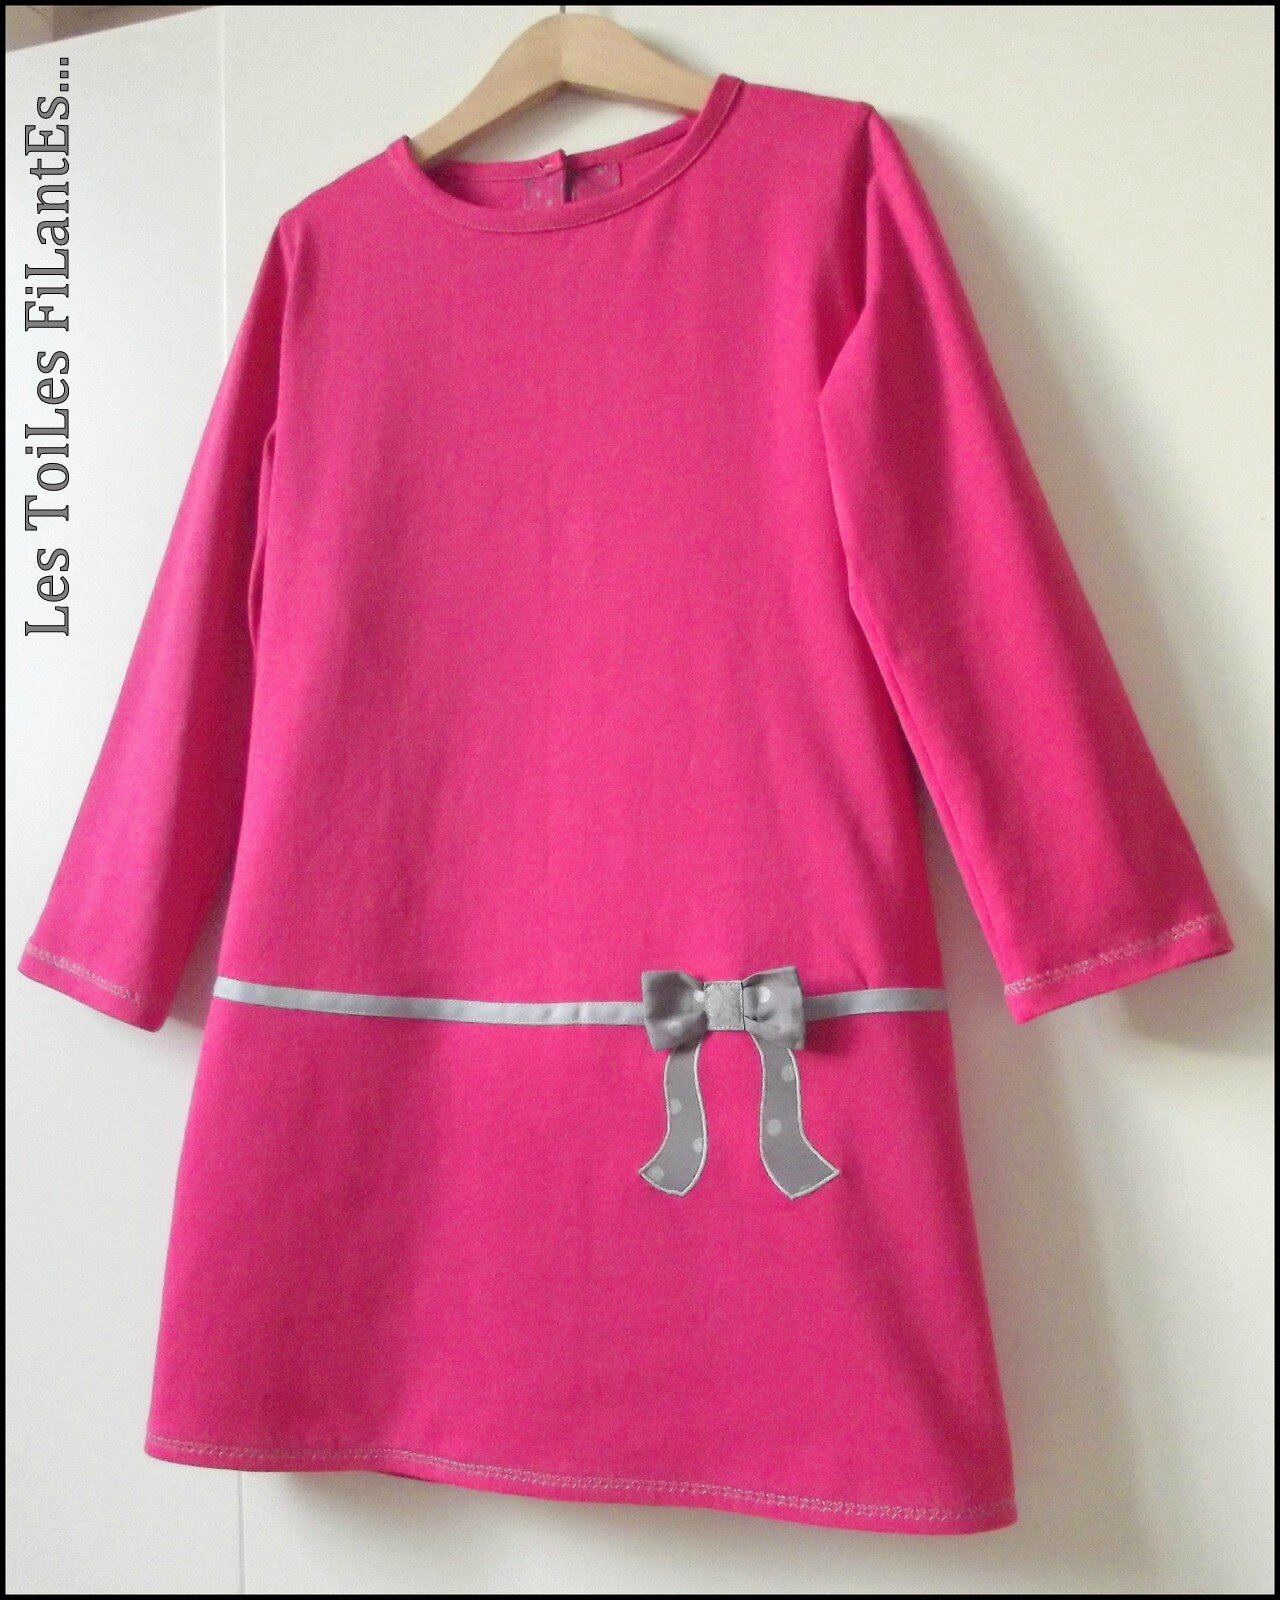 Robe jersey rose FDS7-001